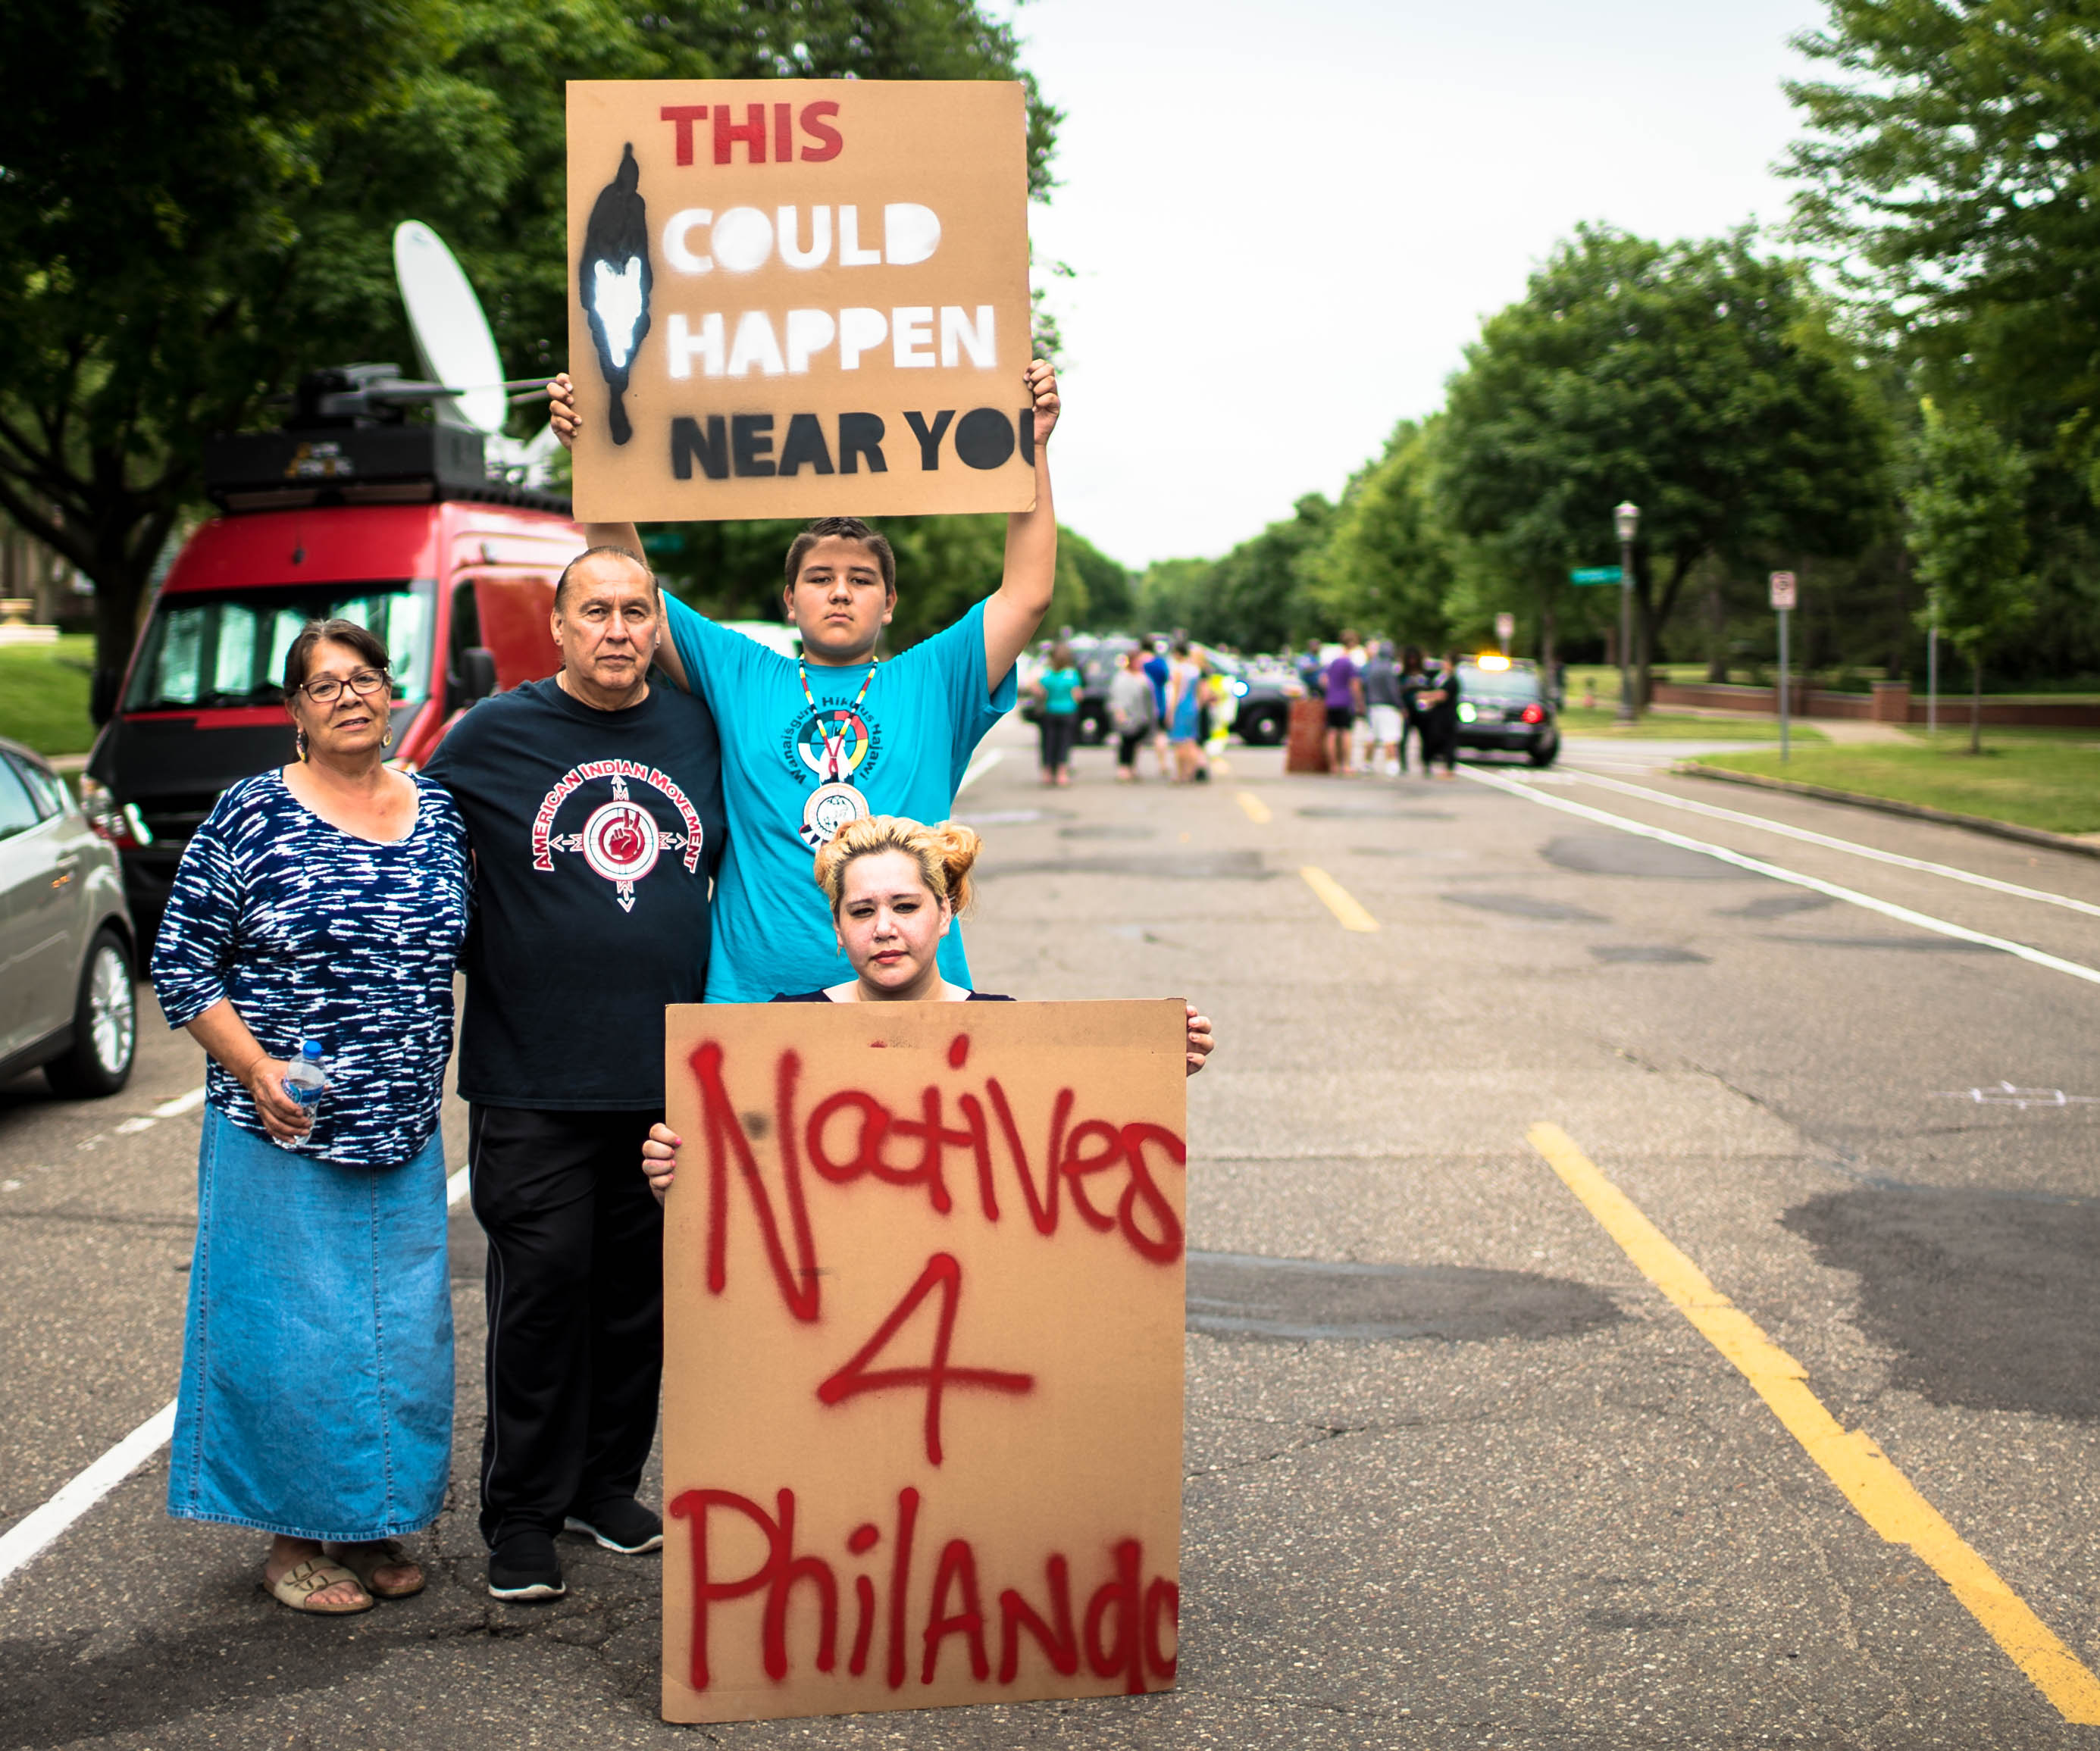 """A group of 4 Native American folks stand on the side of a blockaded road. They hold signs reading, """"Natives 4 Philando,"""" and """"This could happen near you."""""""